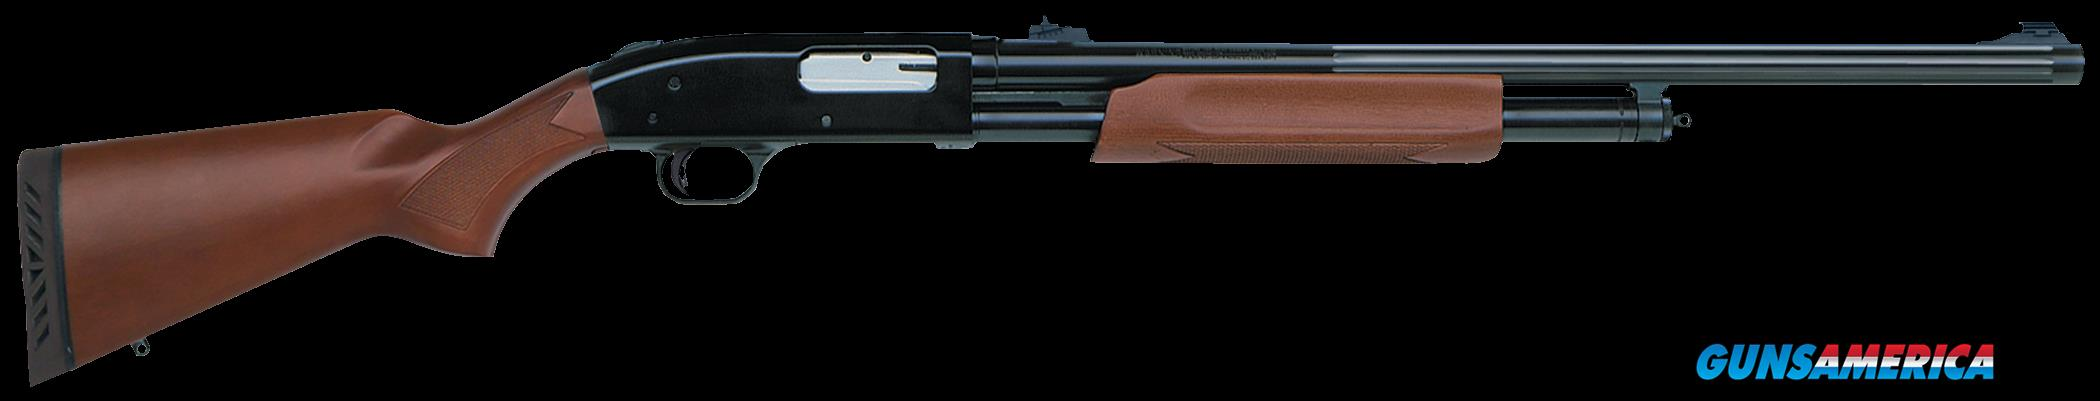 "Mossberg 55244 500 Pump 12 Gauge 24"" 3"" Wood Stk Blued Rcvr  Guns > Shotguns > MN Misc Shotguns"